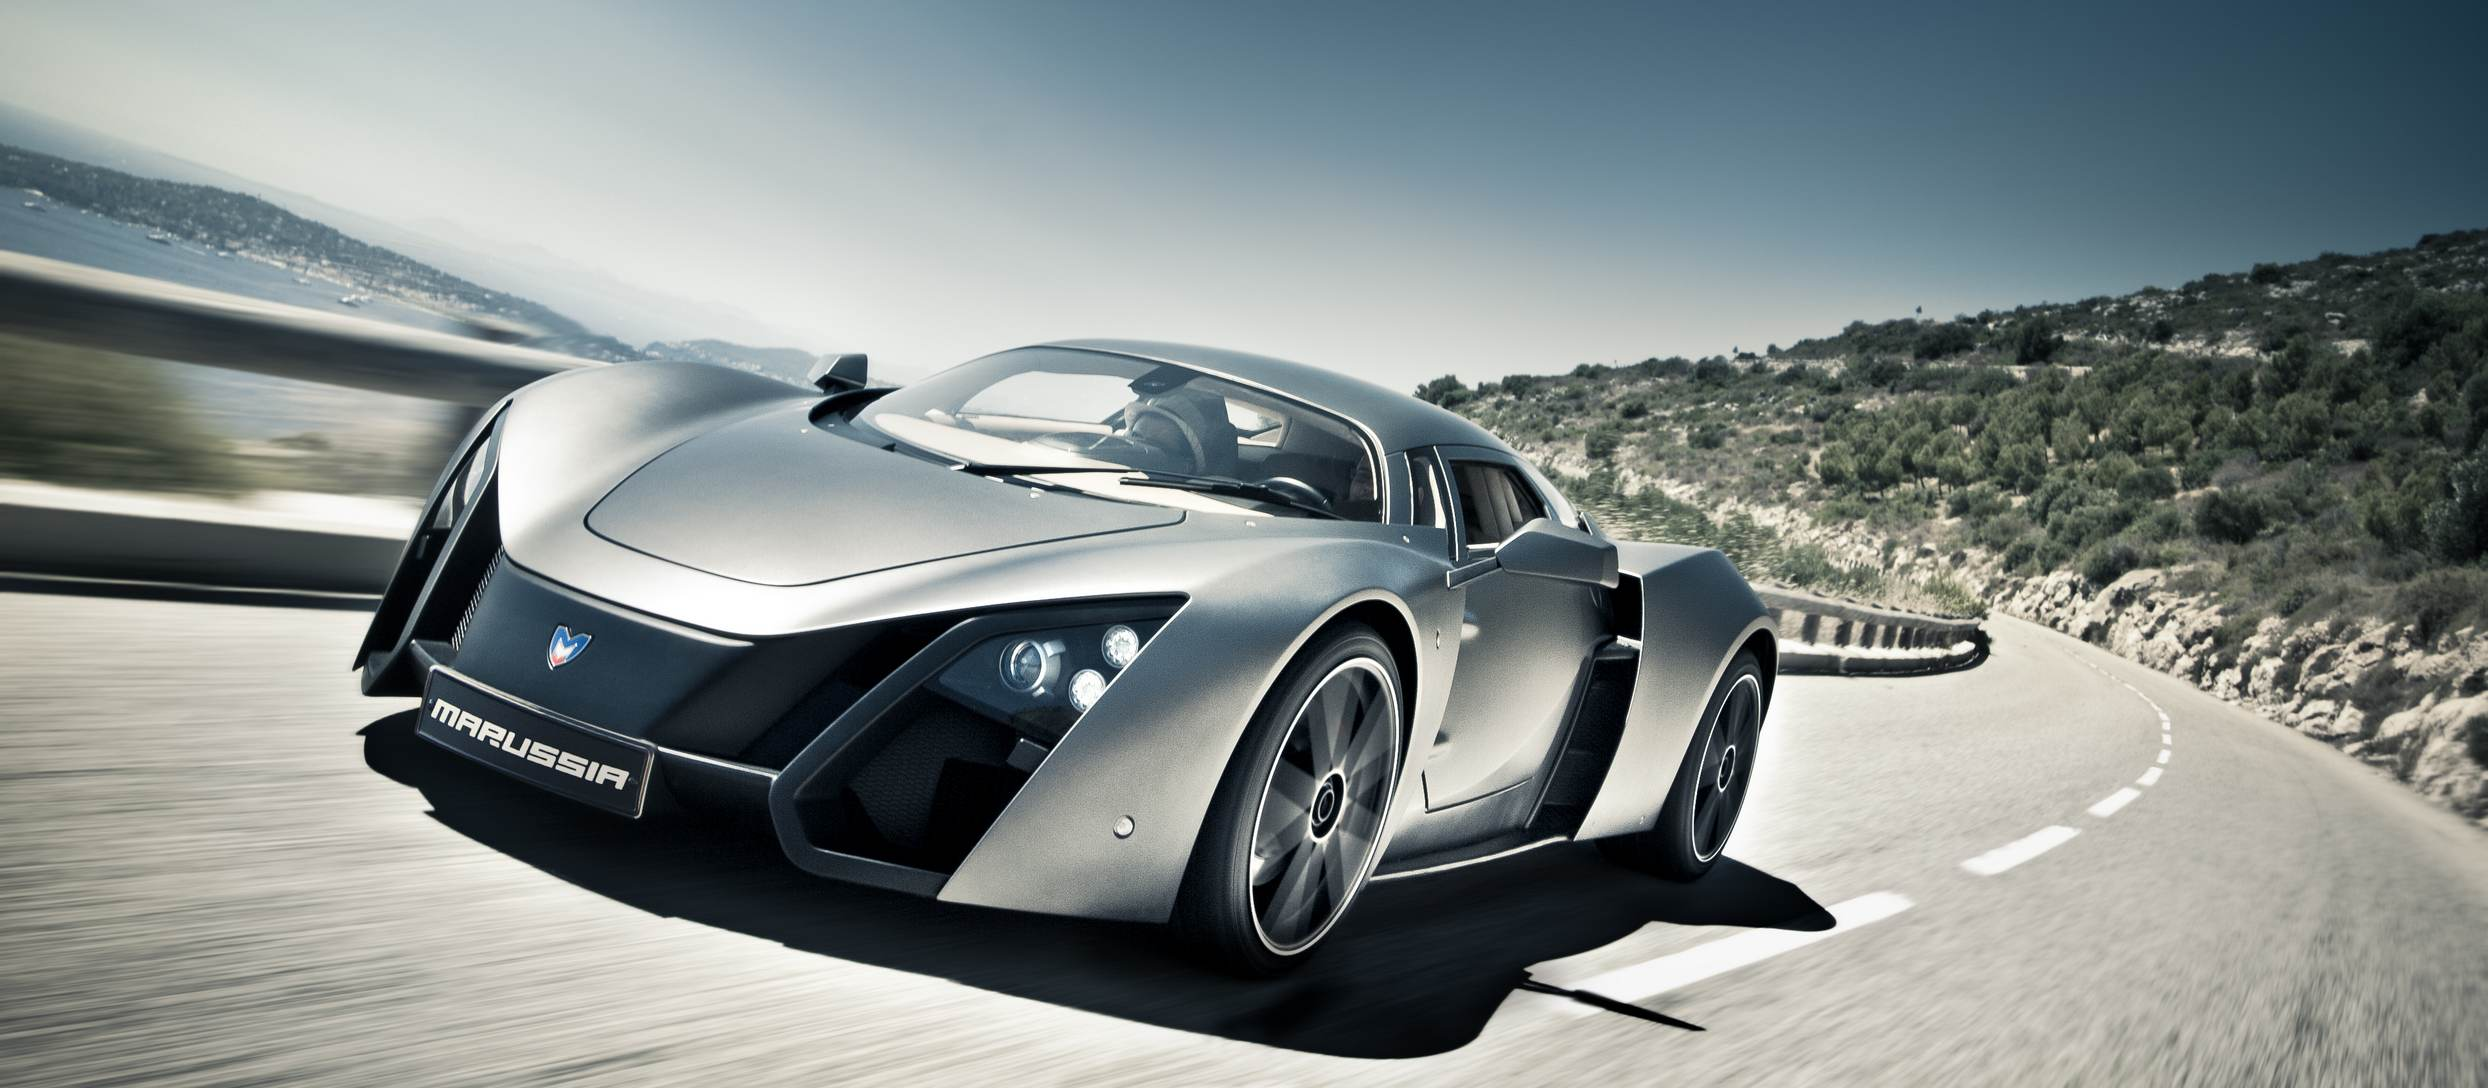 Marussia B2 photo 178804